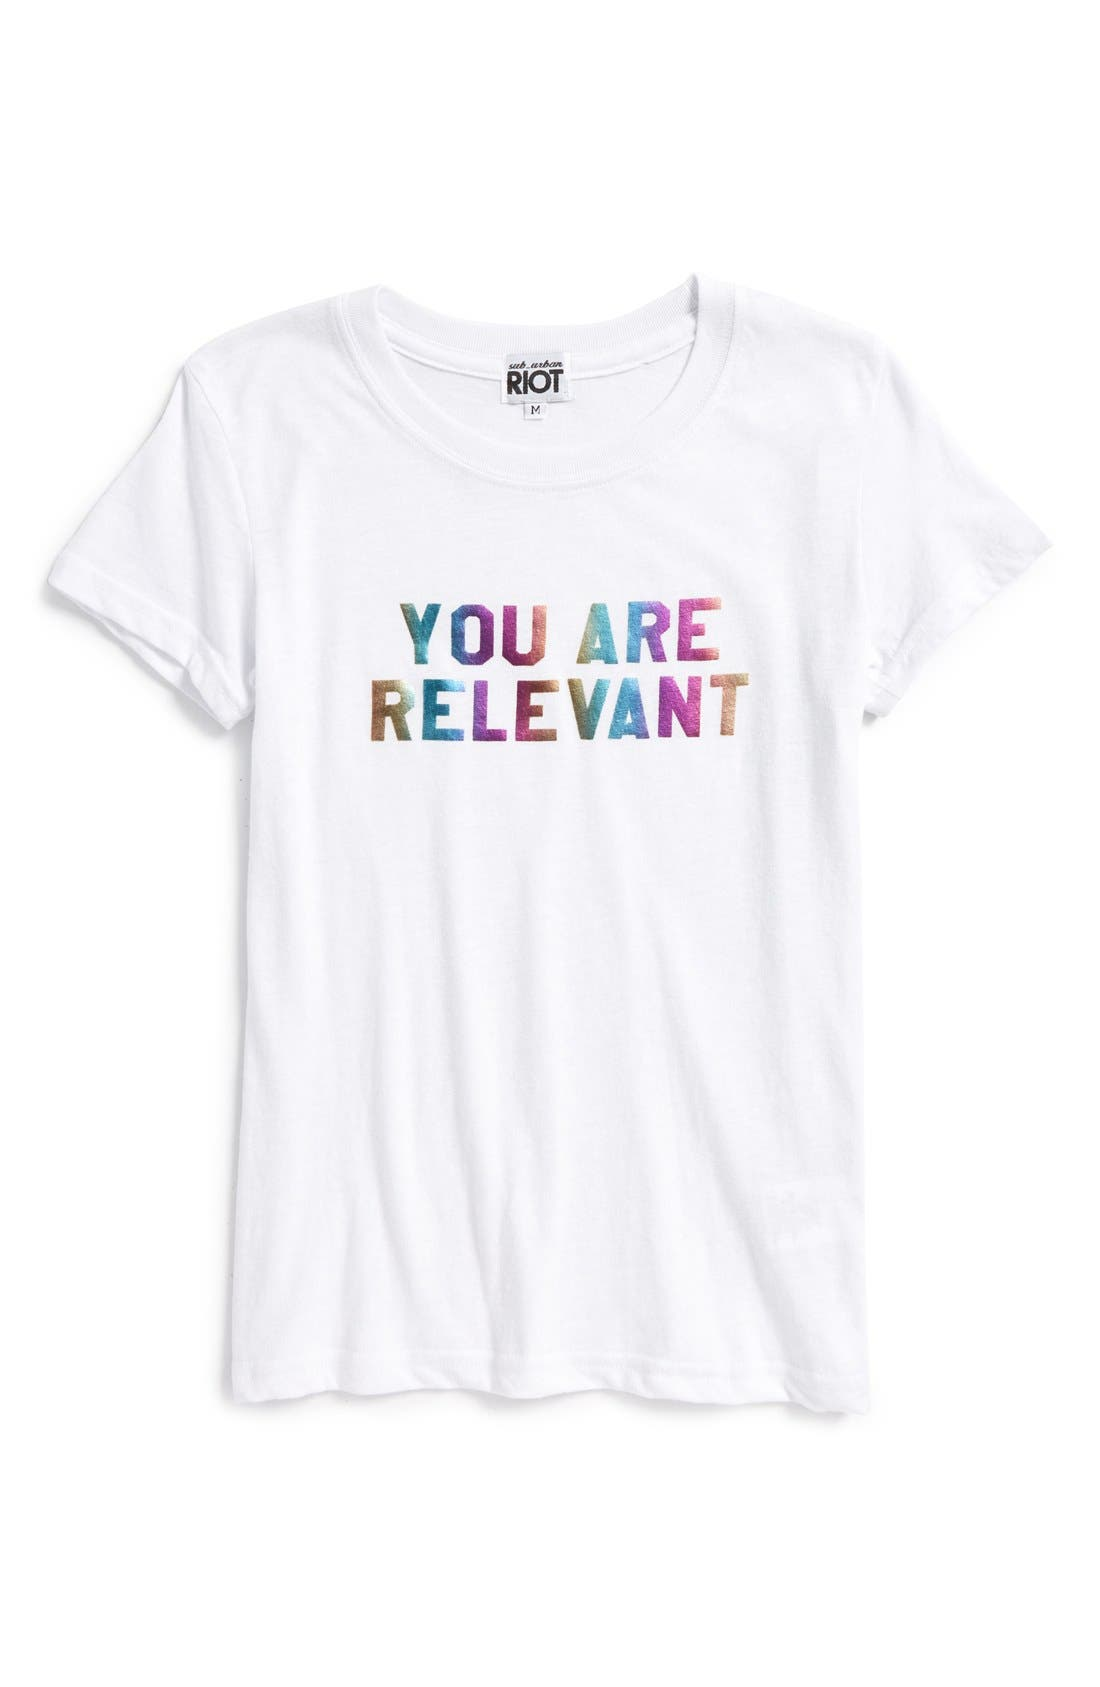 Sub_Urban Riot 'You Are Relevant' Graphic Tee (Big Girls)